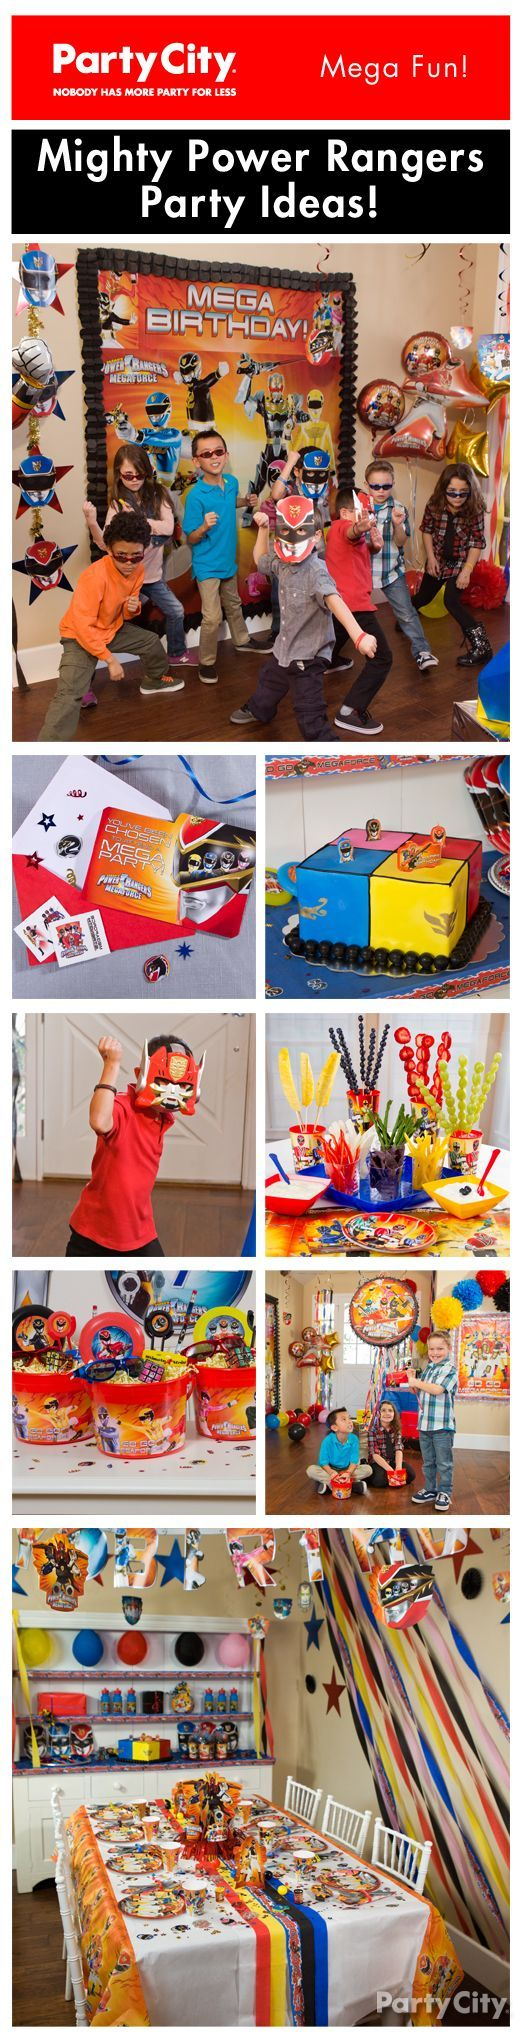 17 best images about Esyiah on Pinterest   Superhero party, Fish ...